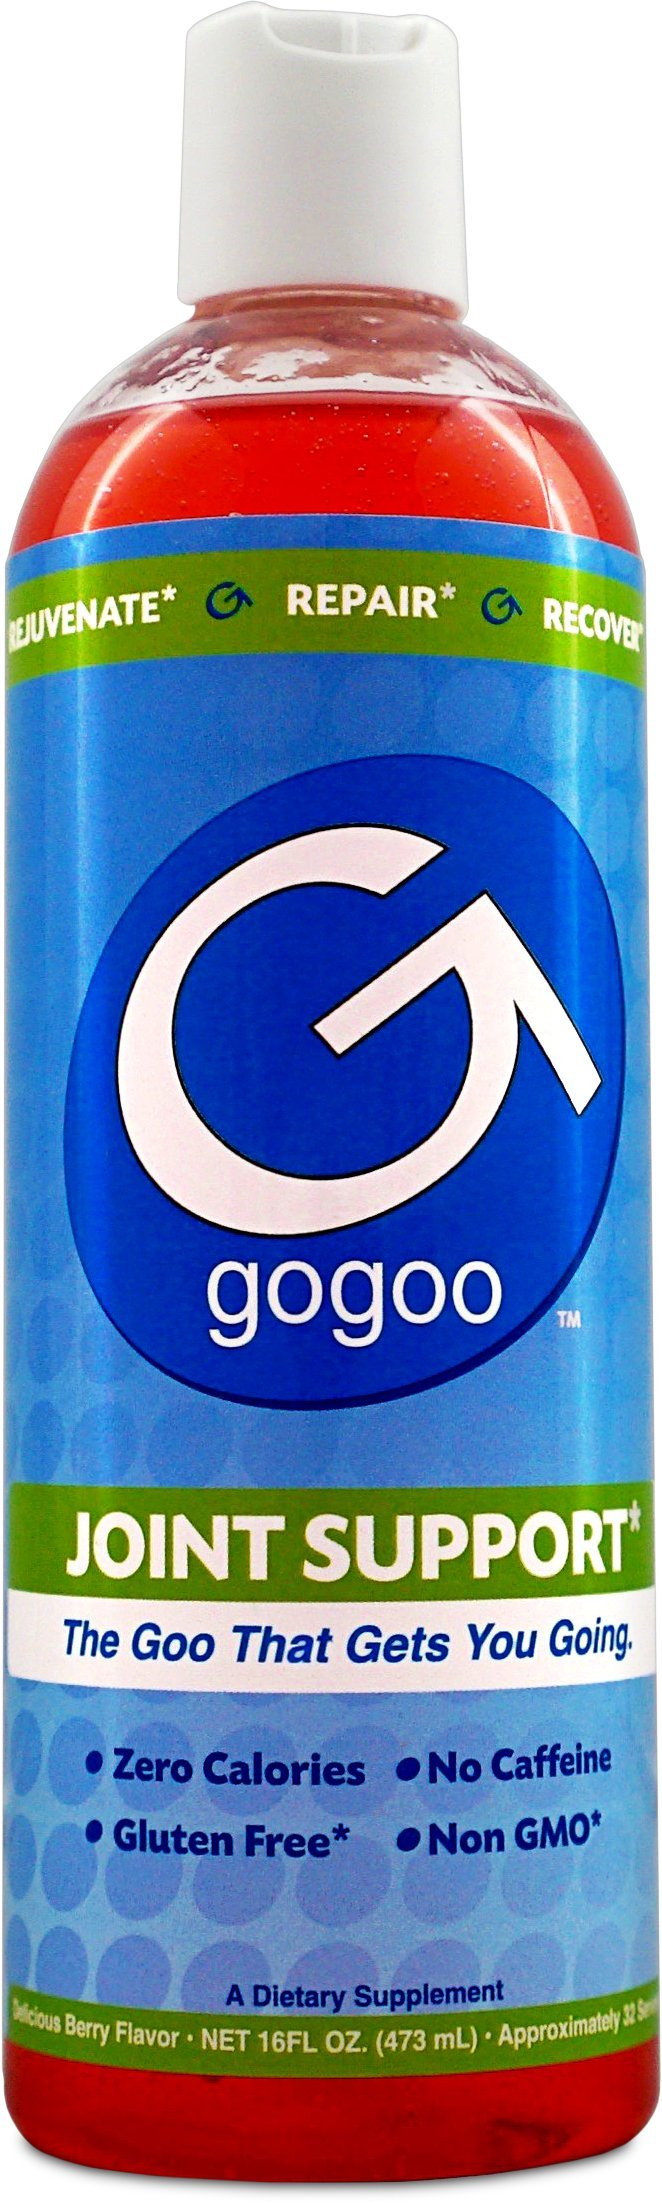 Gogoo - Hyaluronic Acid, MSM & Glucosamine Sulfate Joint Support Supplement, 16 oz Oral Liquid Gel, 32 Servings